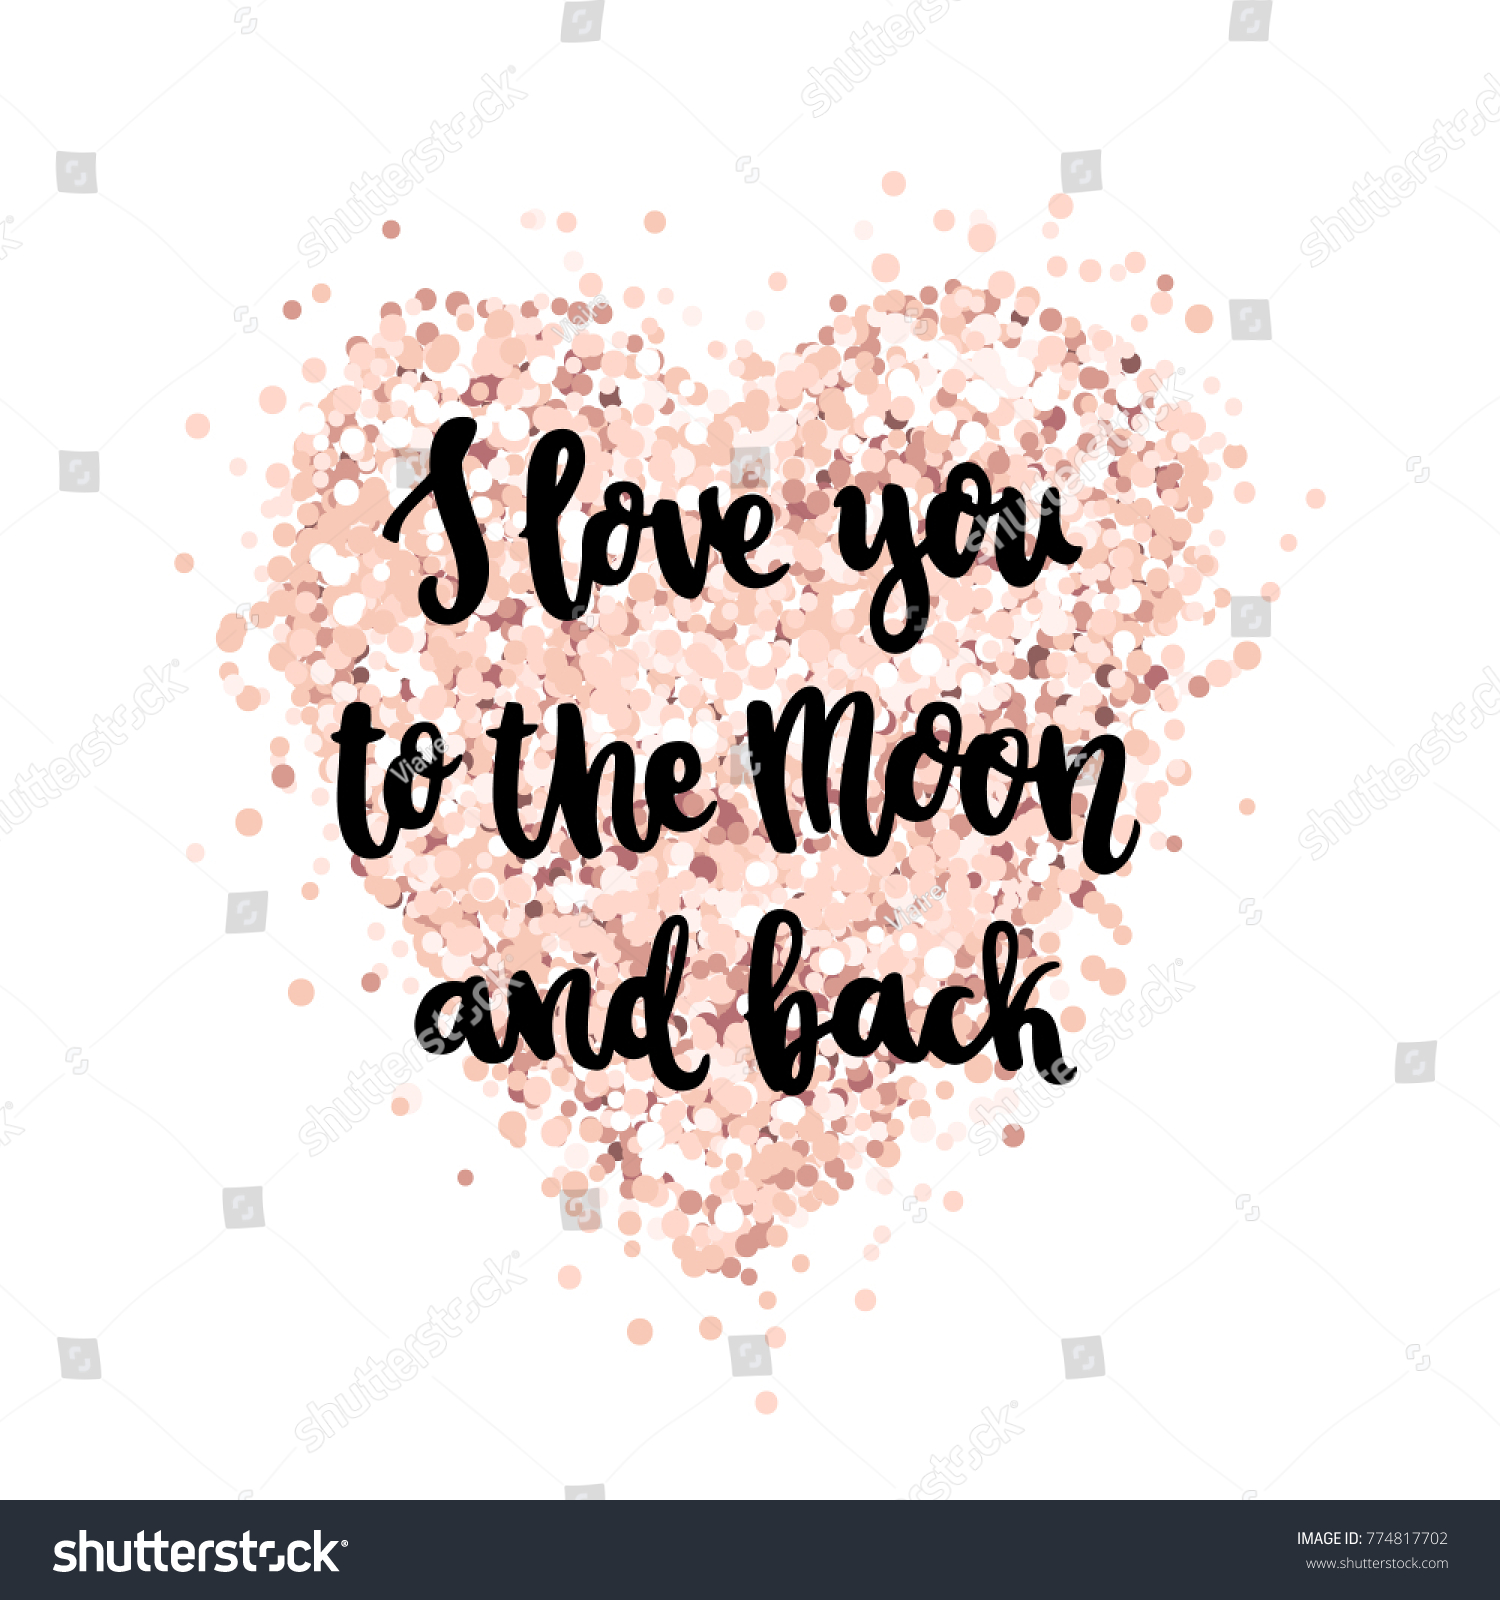 Quote I Love You To The Moon And Back Handdrawing Quote Love You Moon Back Stock Vector 774817702